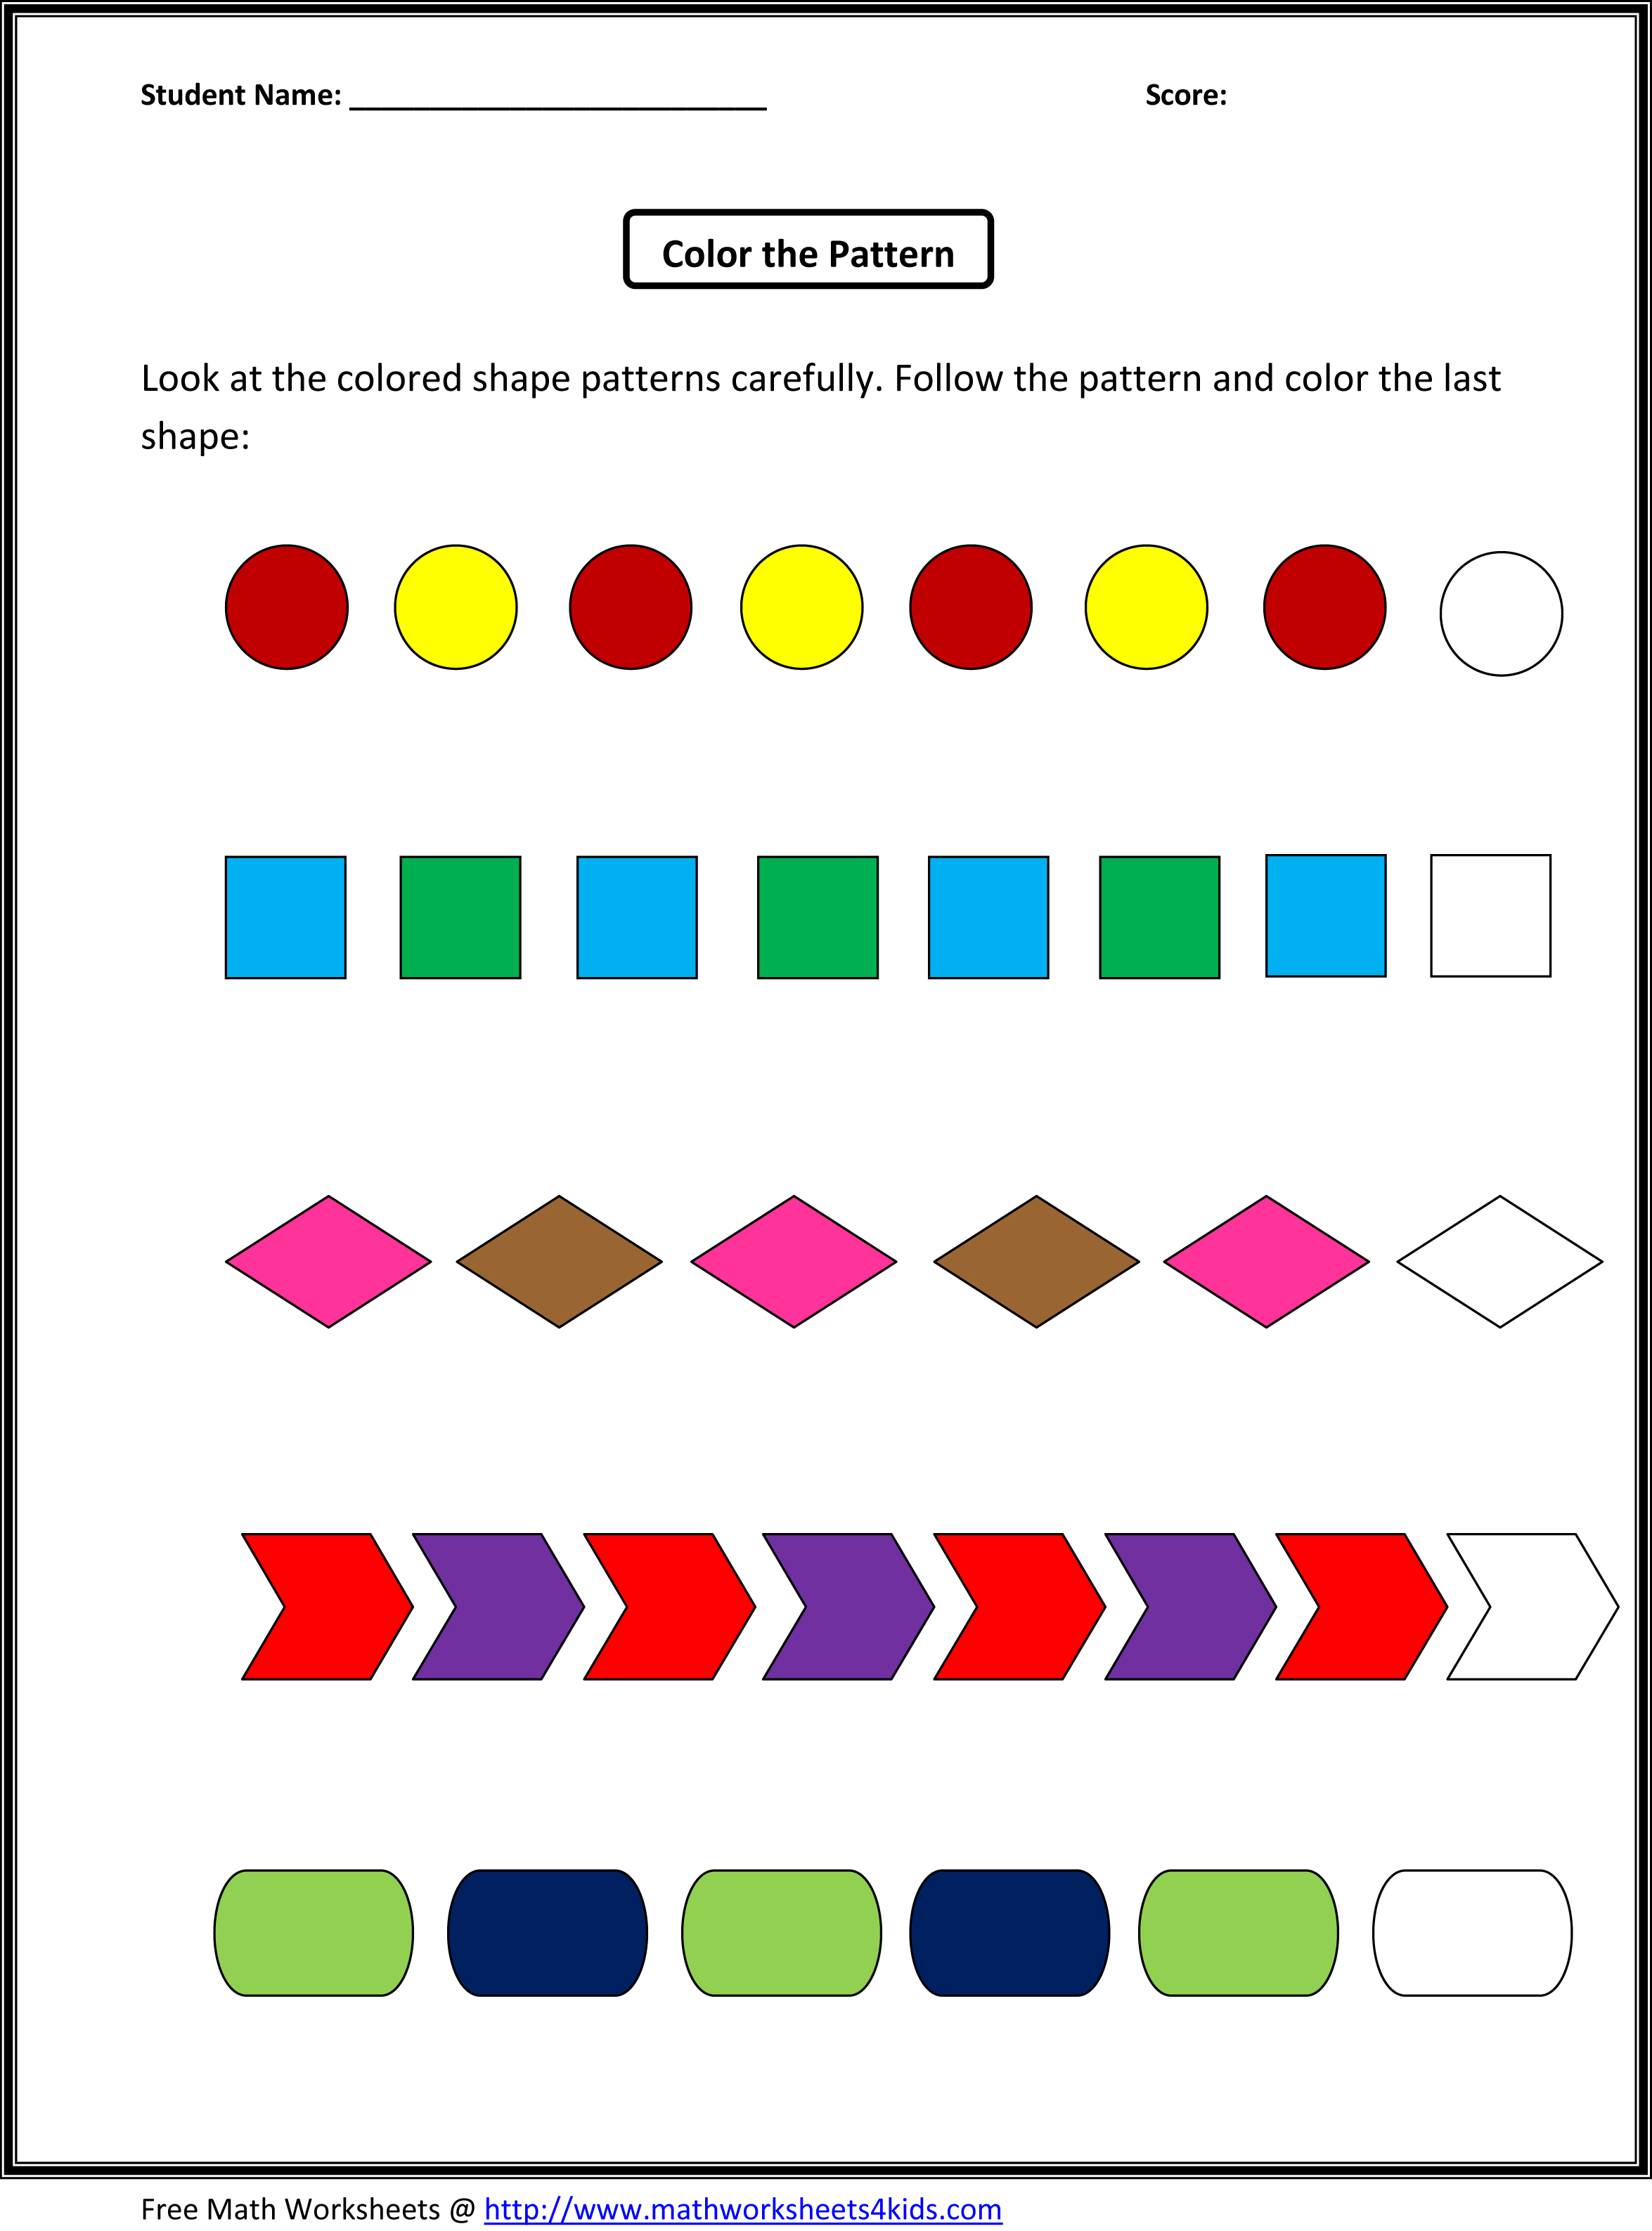 Patterns Kindergarten Worksheets Scalien – Patterns Worksheet for Kindergarten